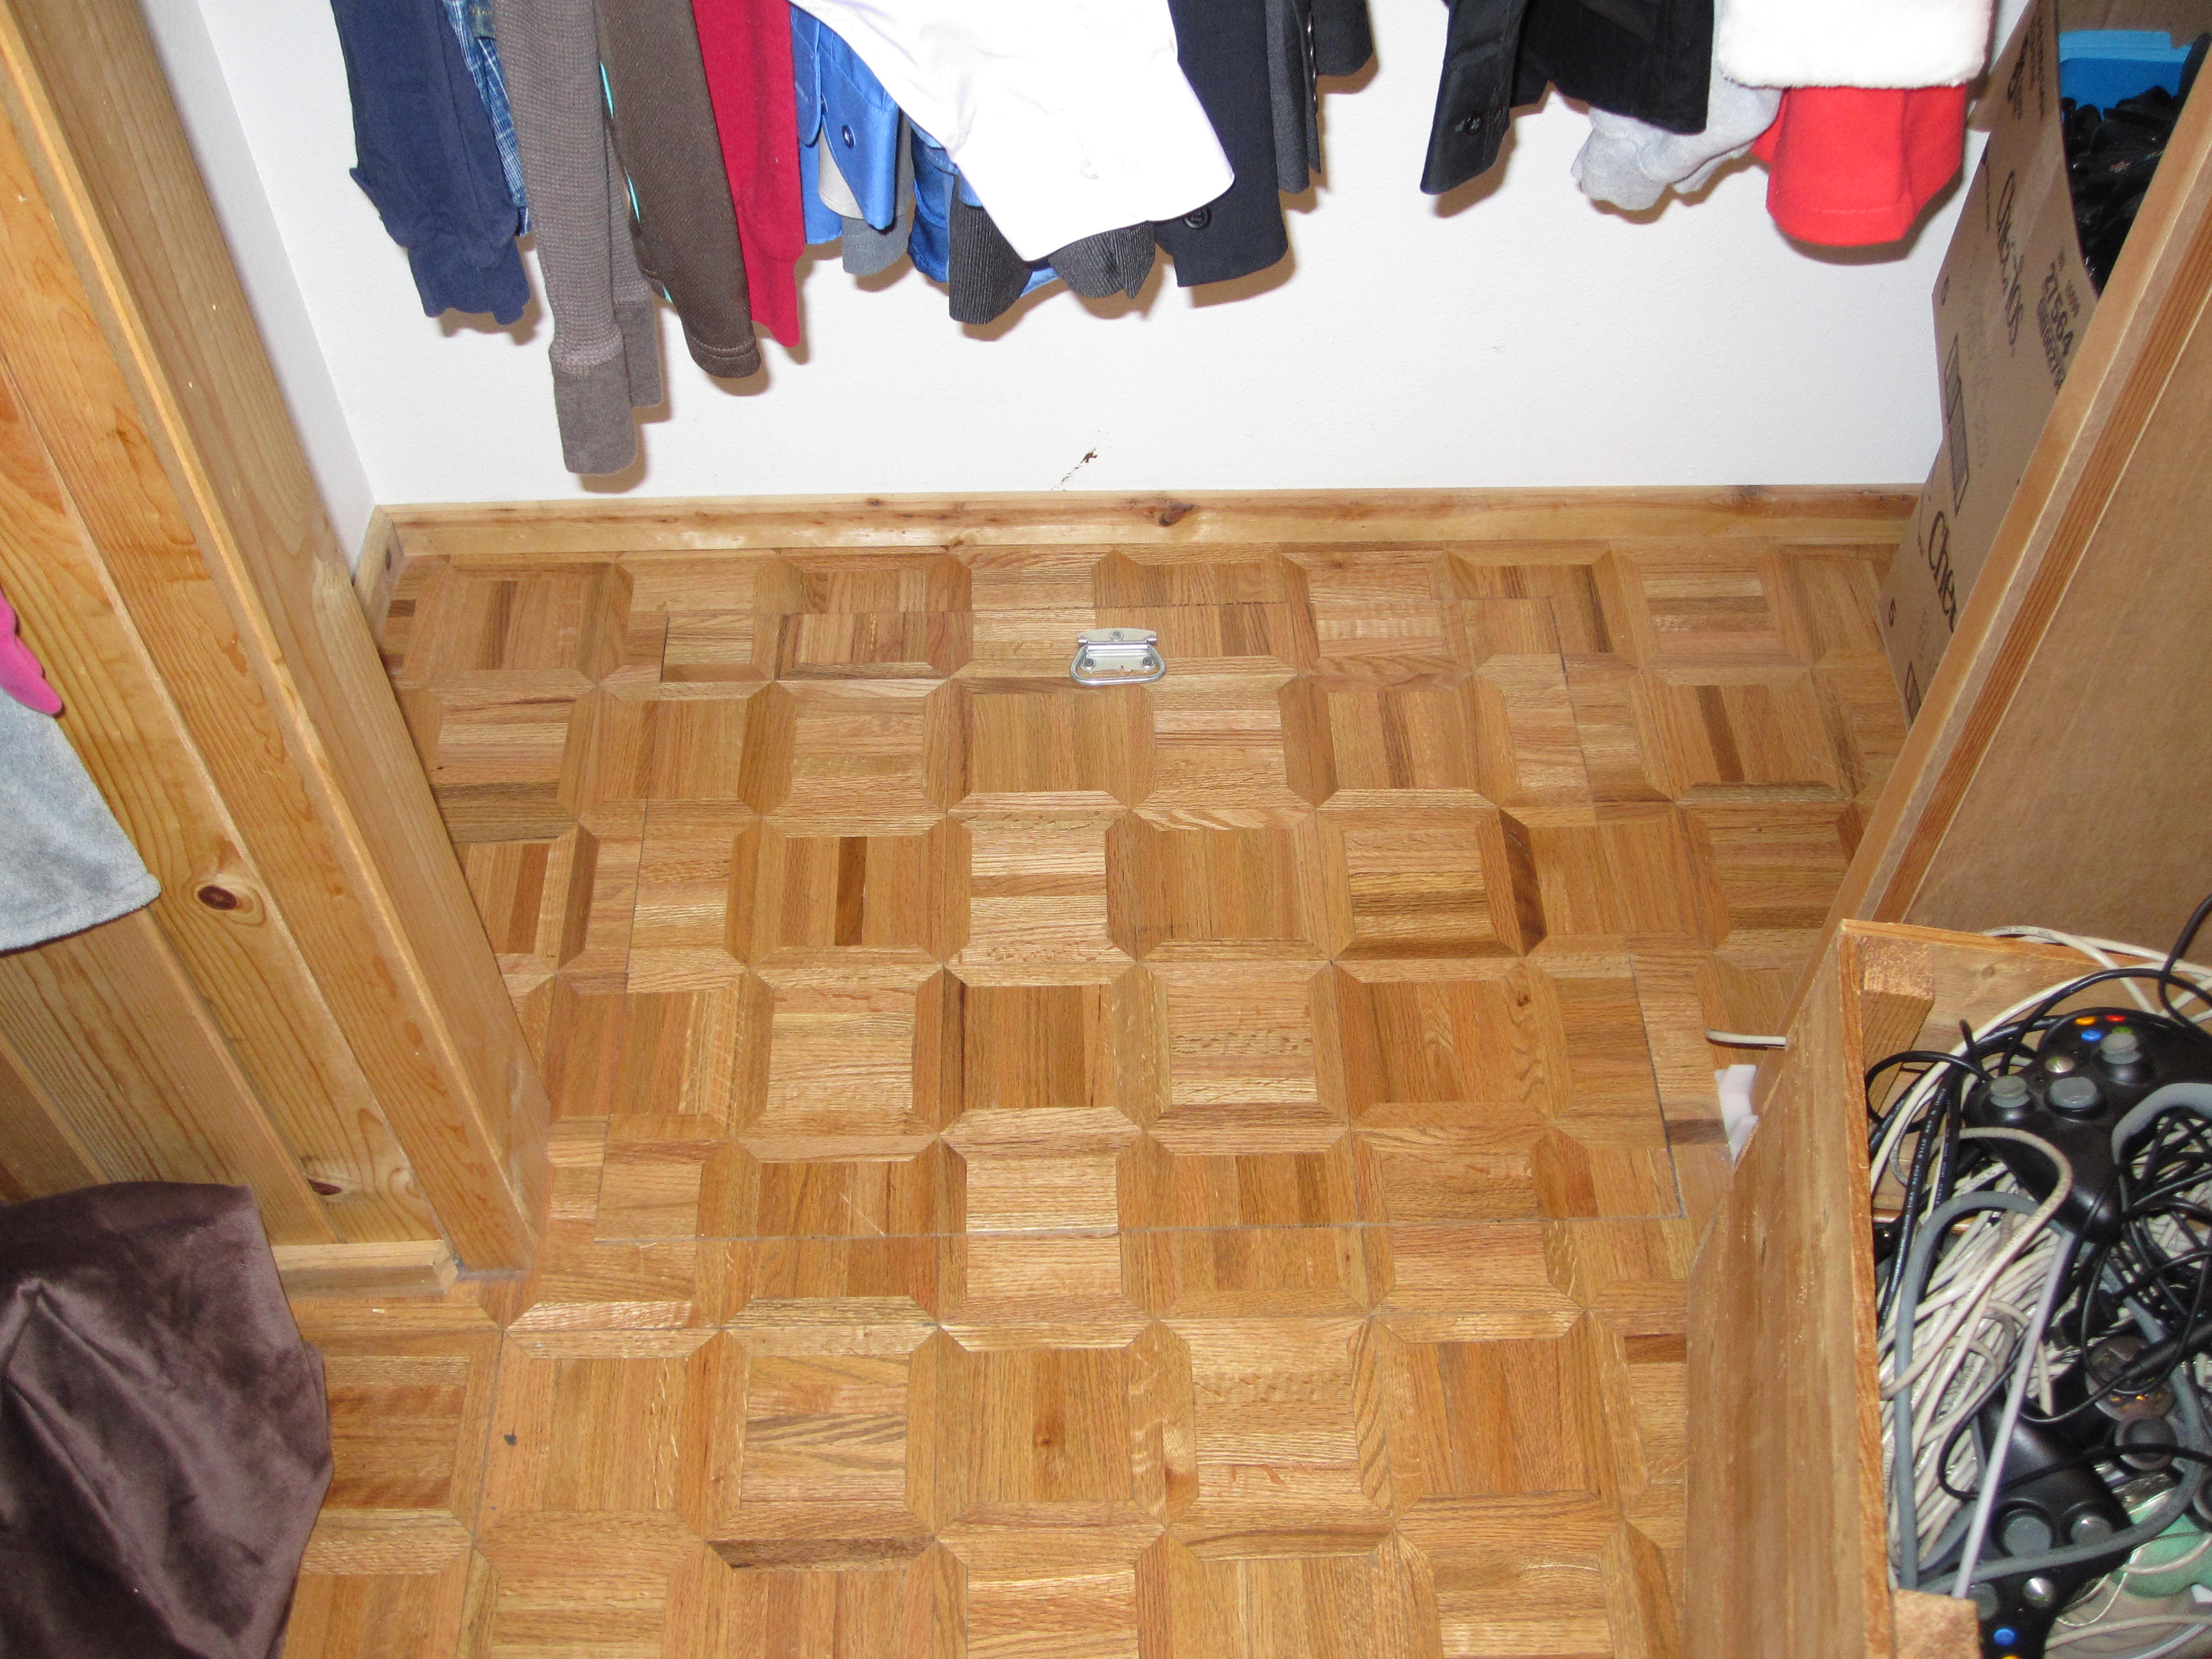 how to build a trapdoor in the floor